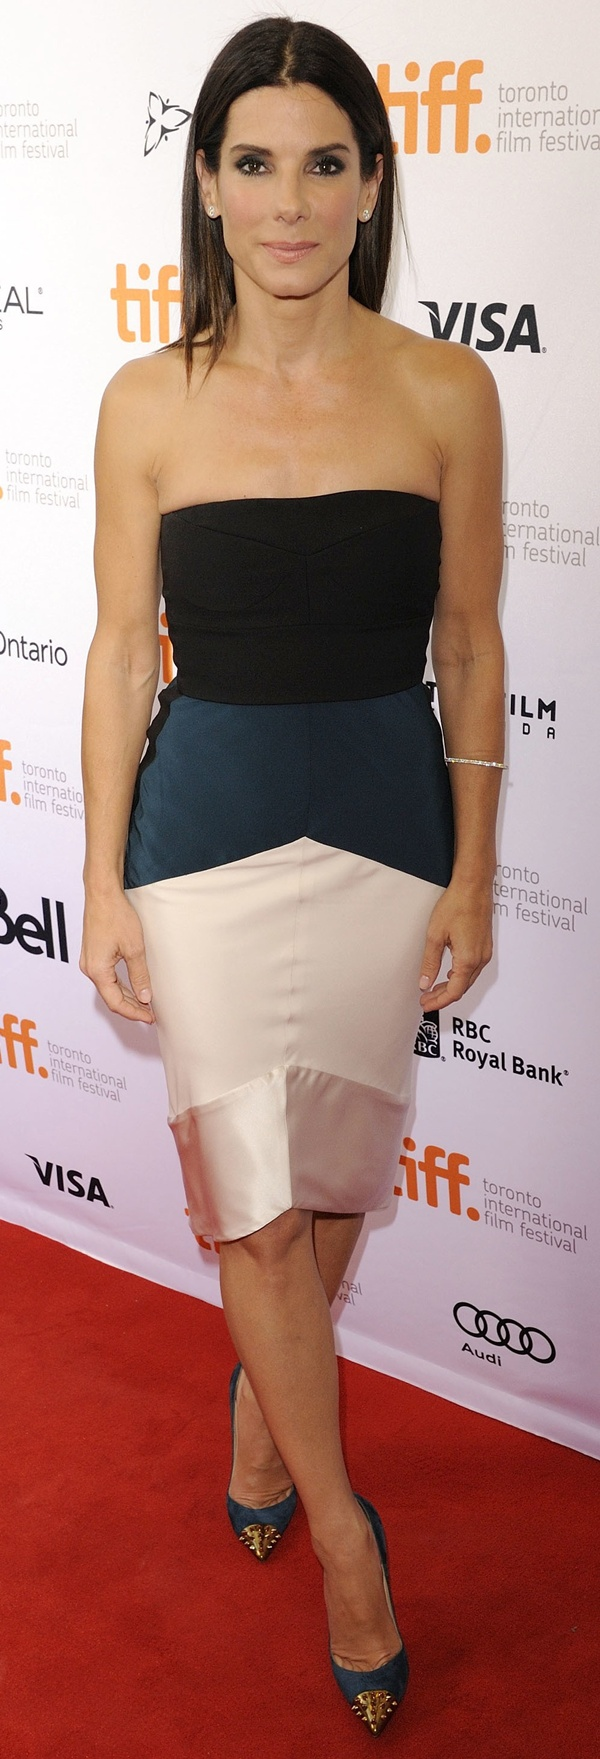 Sandra Bullock in a Narciso Rodriguez color-blocked dress with a bustier-inspired bodice and satin trim